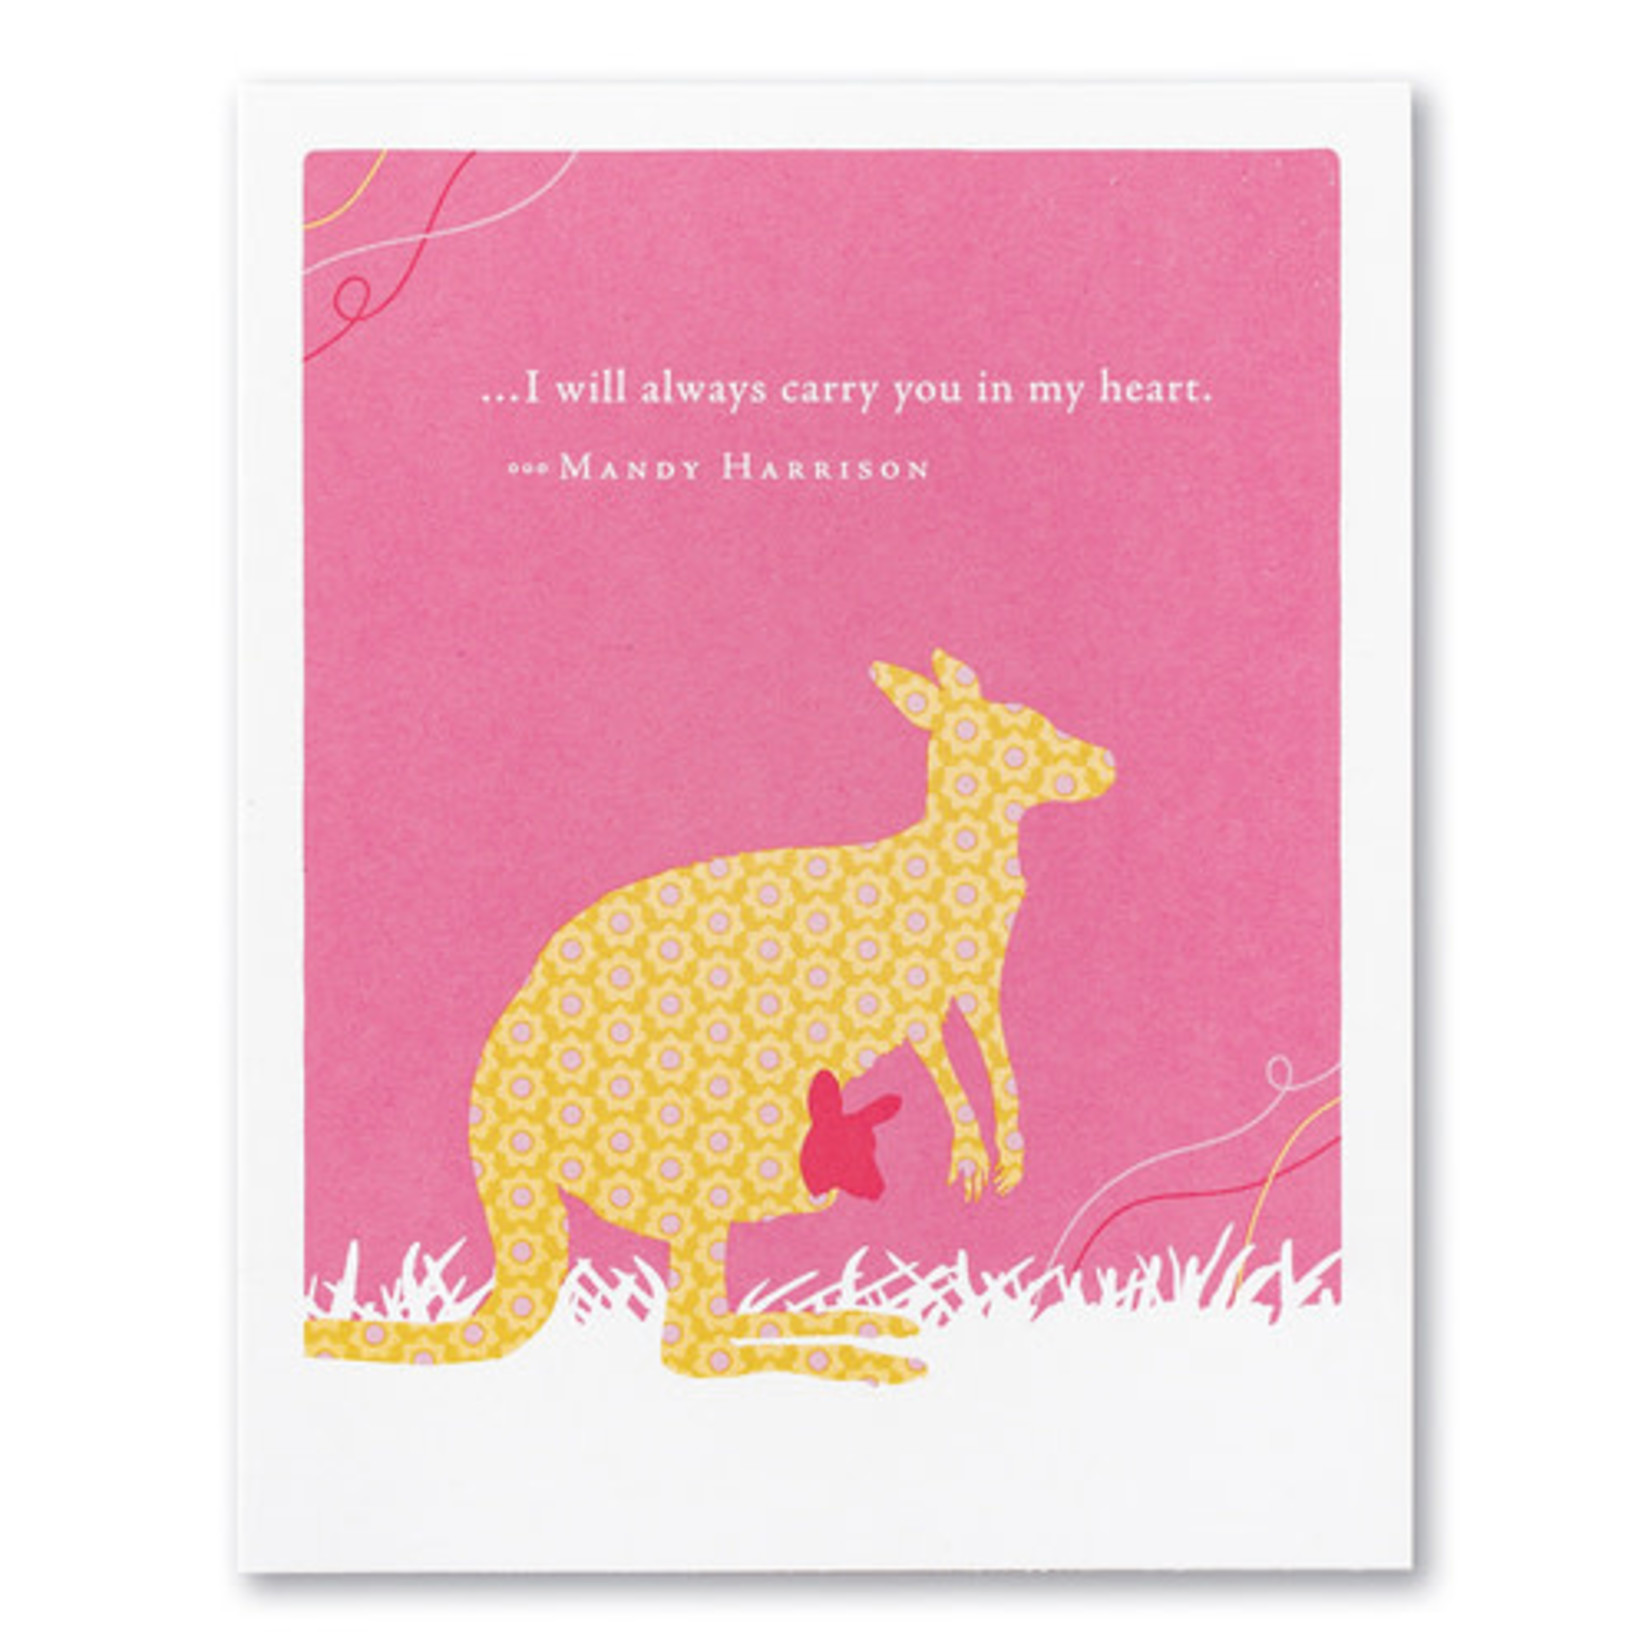 I WILL ALWAYS CARRY YOU CARD